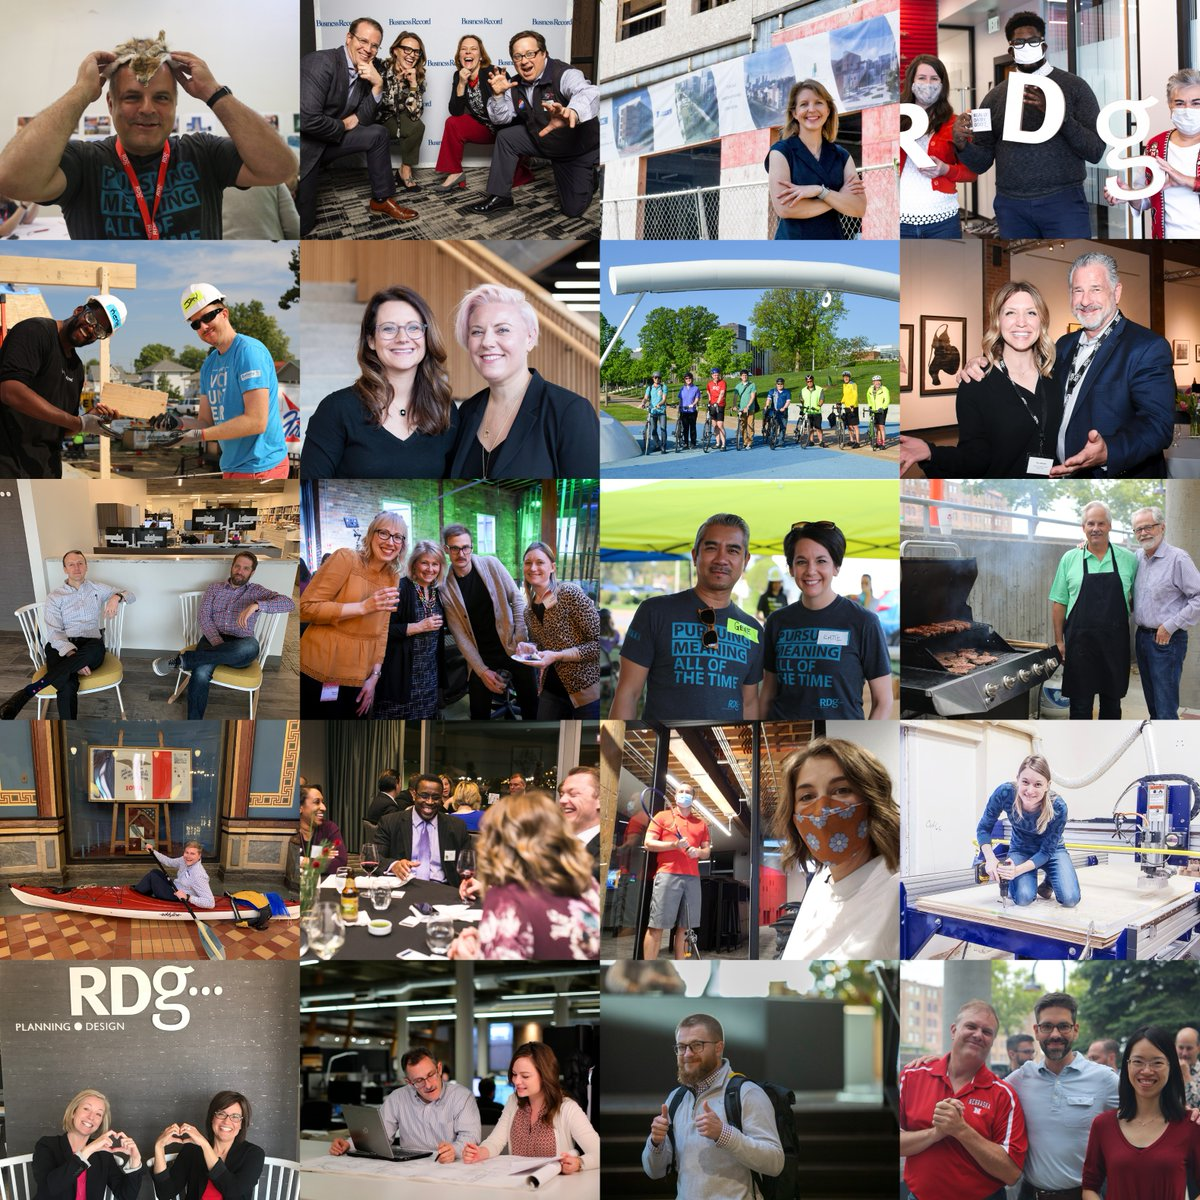 On this #EmployeeAppreciationDay, we want to thank each and every one of our incredible RDGers. The work we do is meaningful because we create it together!   #RealLifeAtRDG #ThankYou #WorkAtRDG #EmployeeAppreciation #CreateMeaningTogether